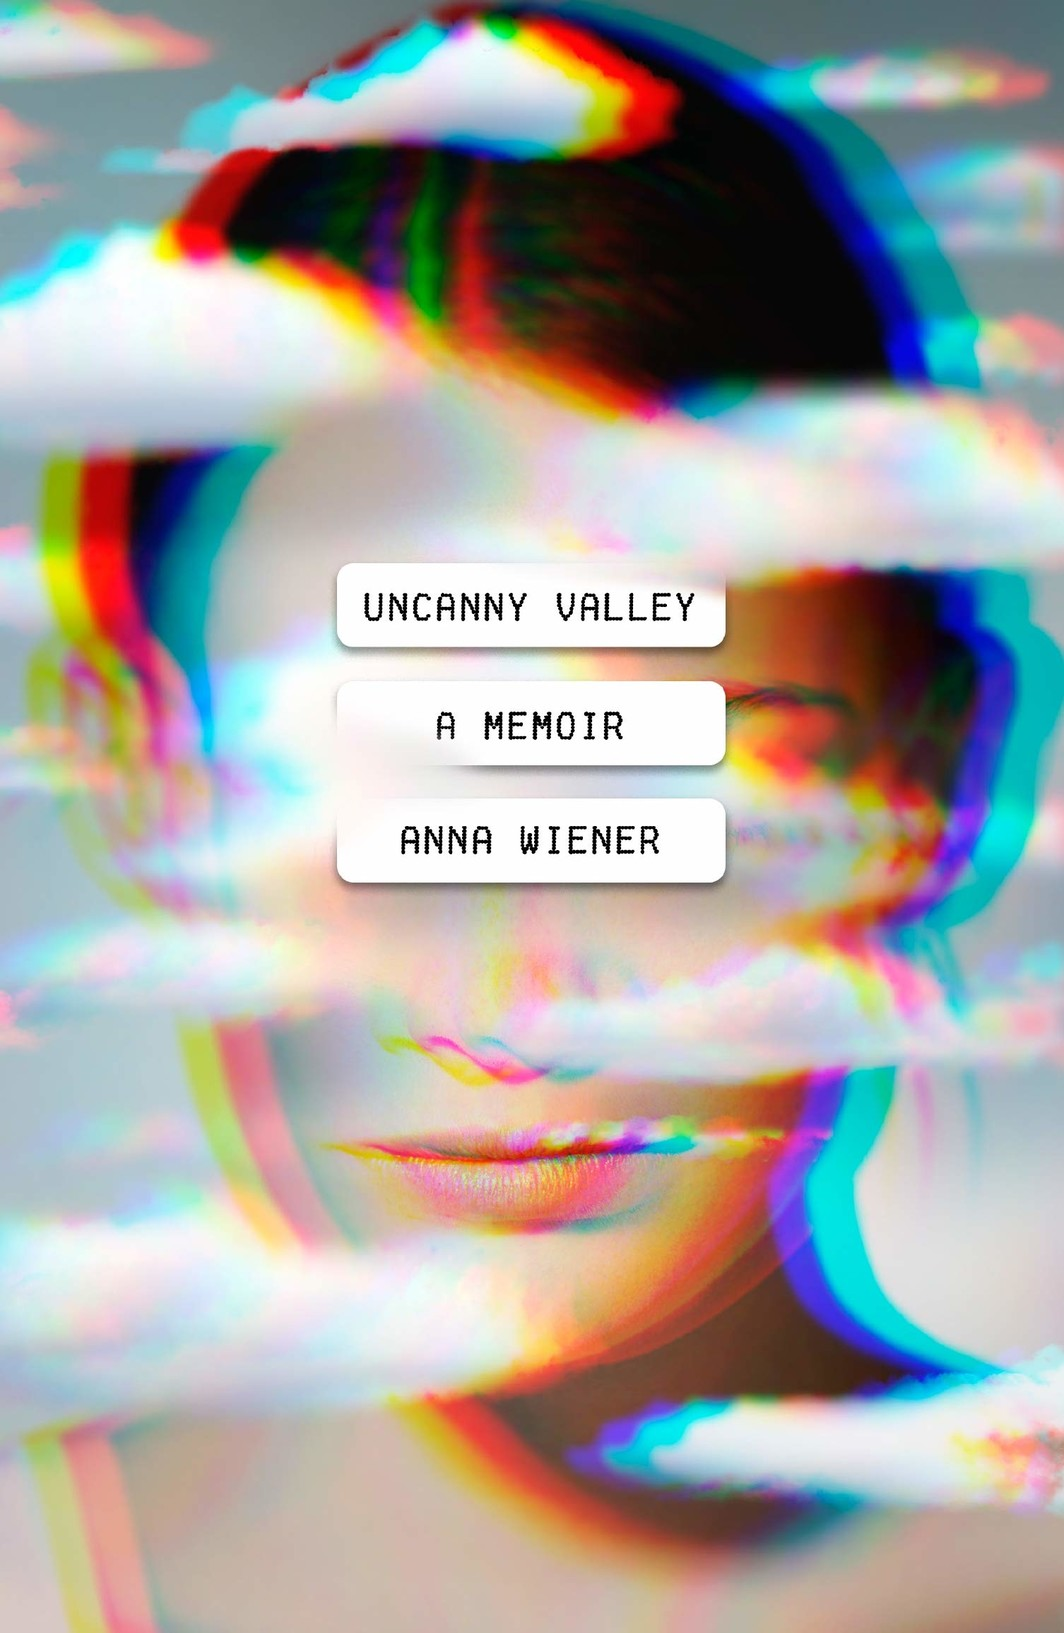 The cover of Uncanny Valley